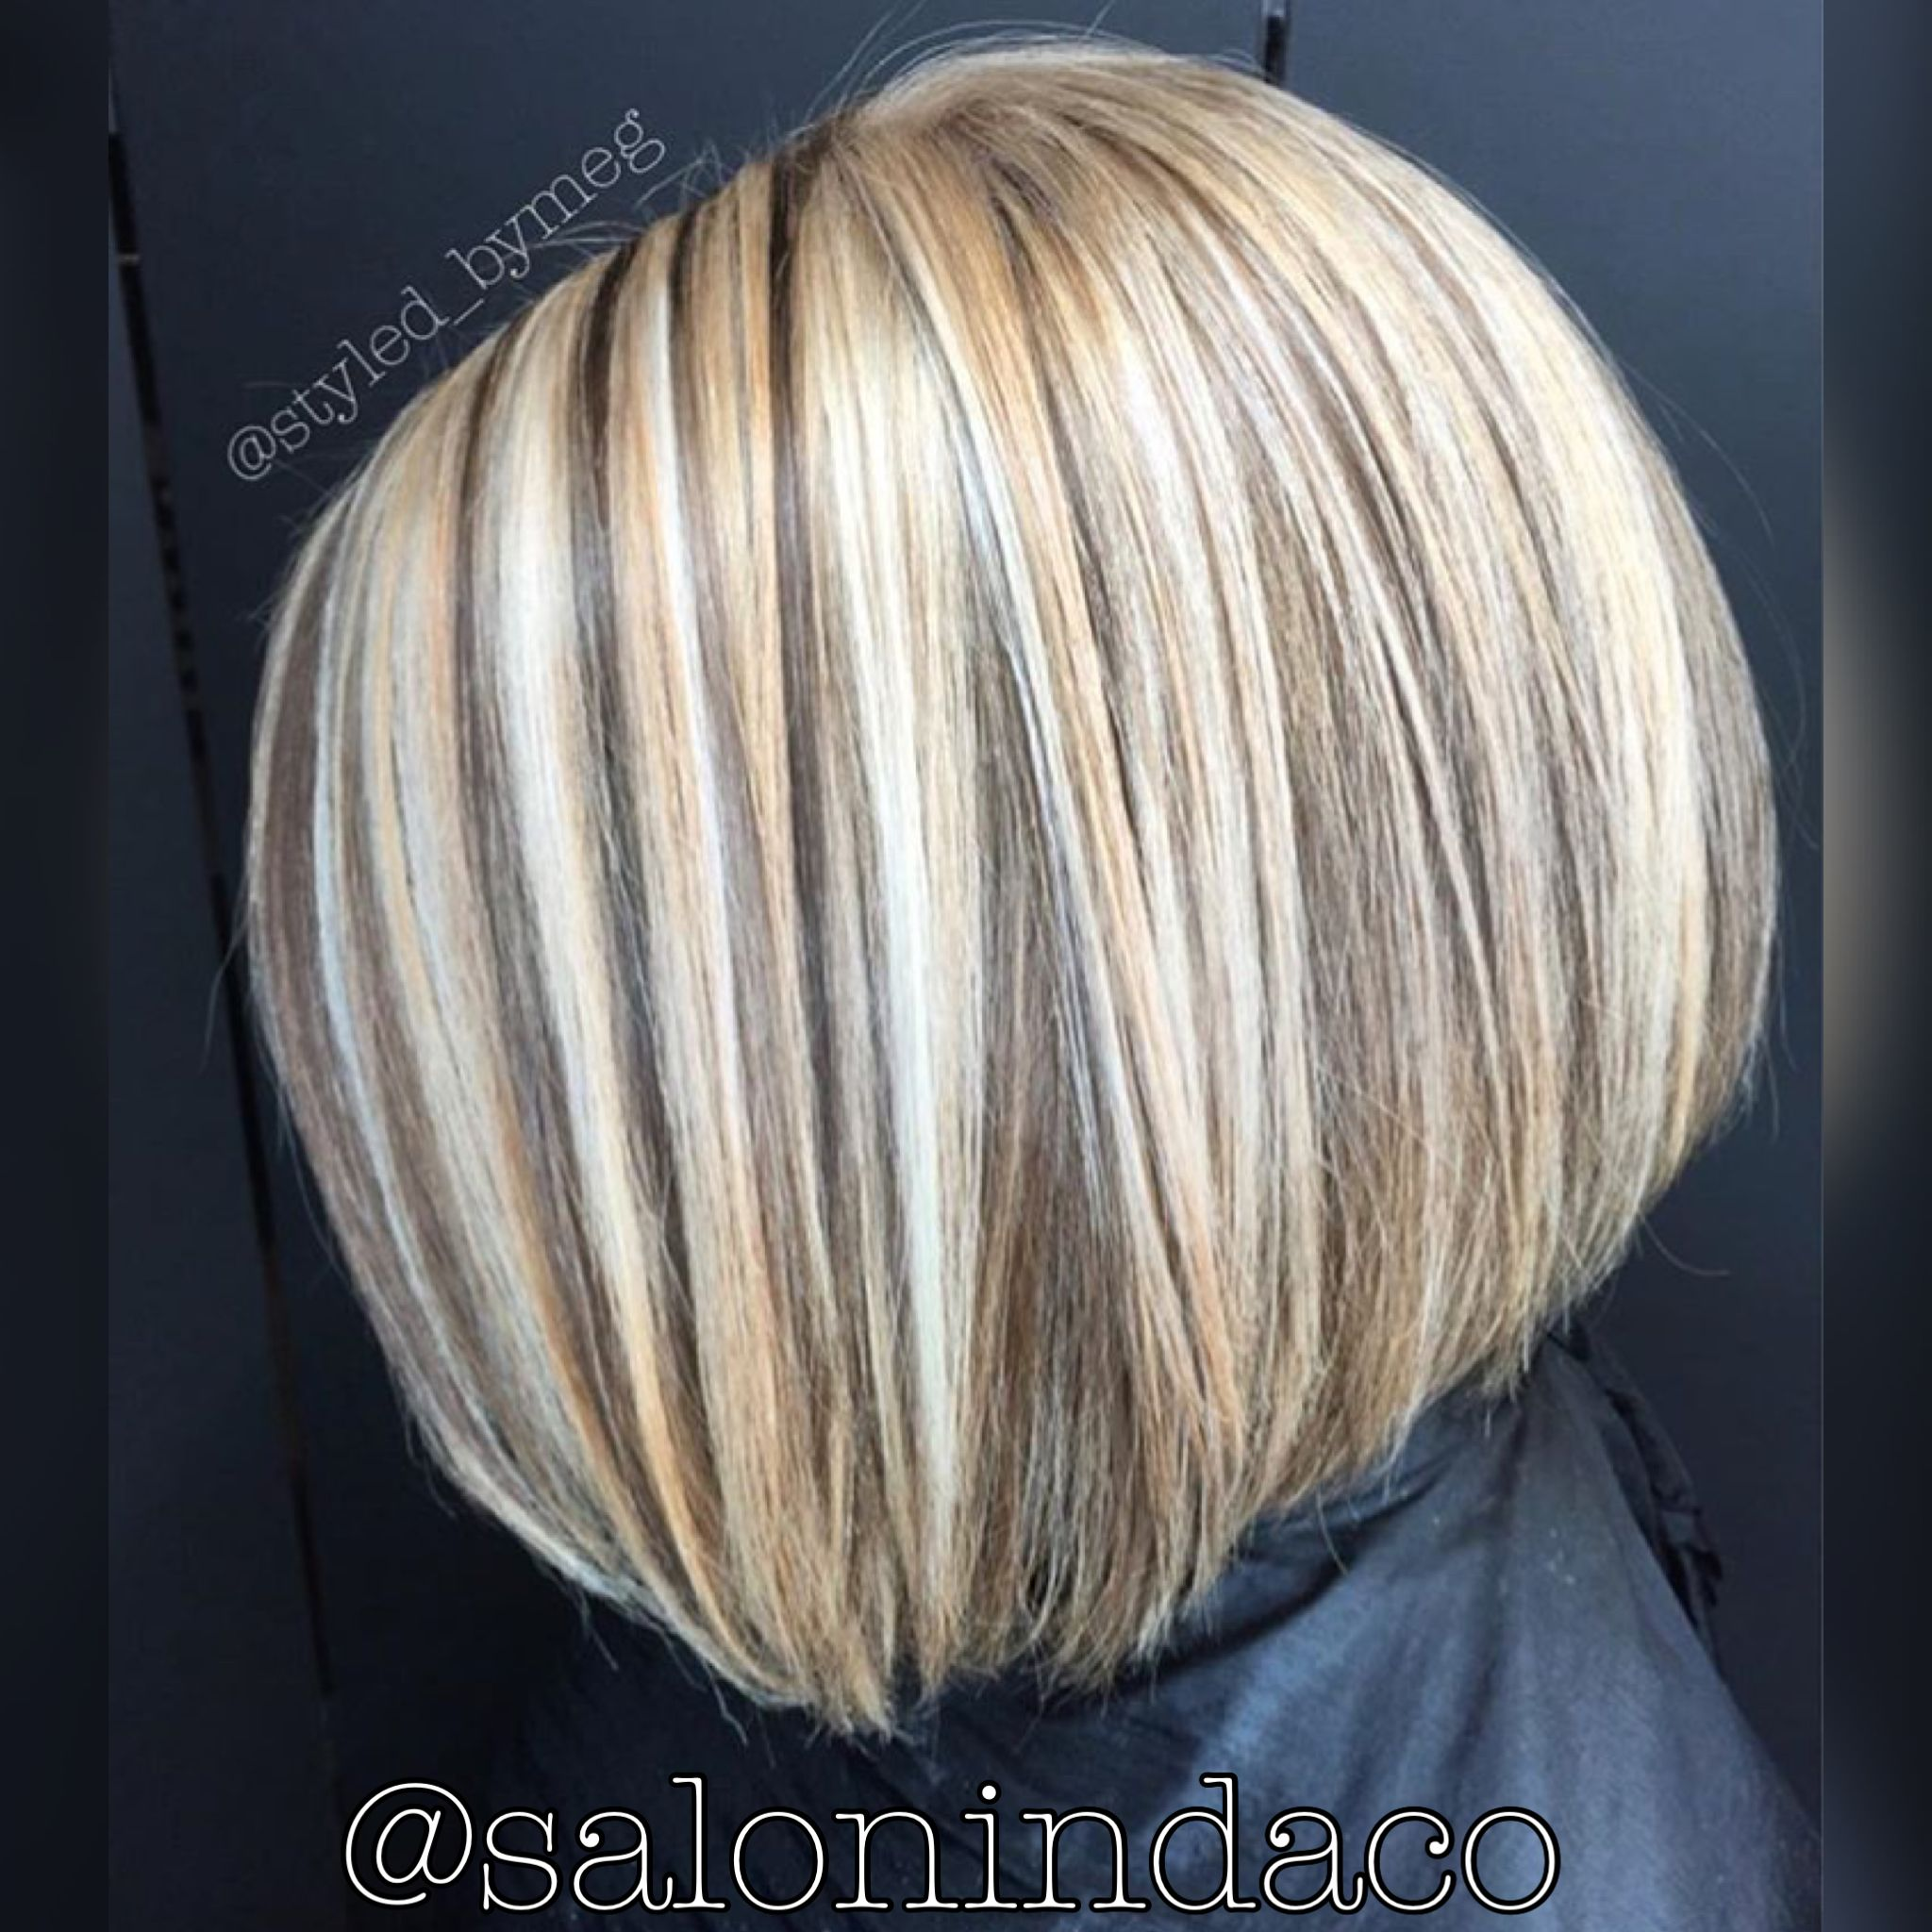 Dimensional chocolate coffee caramel lowlights with ash icy blonde